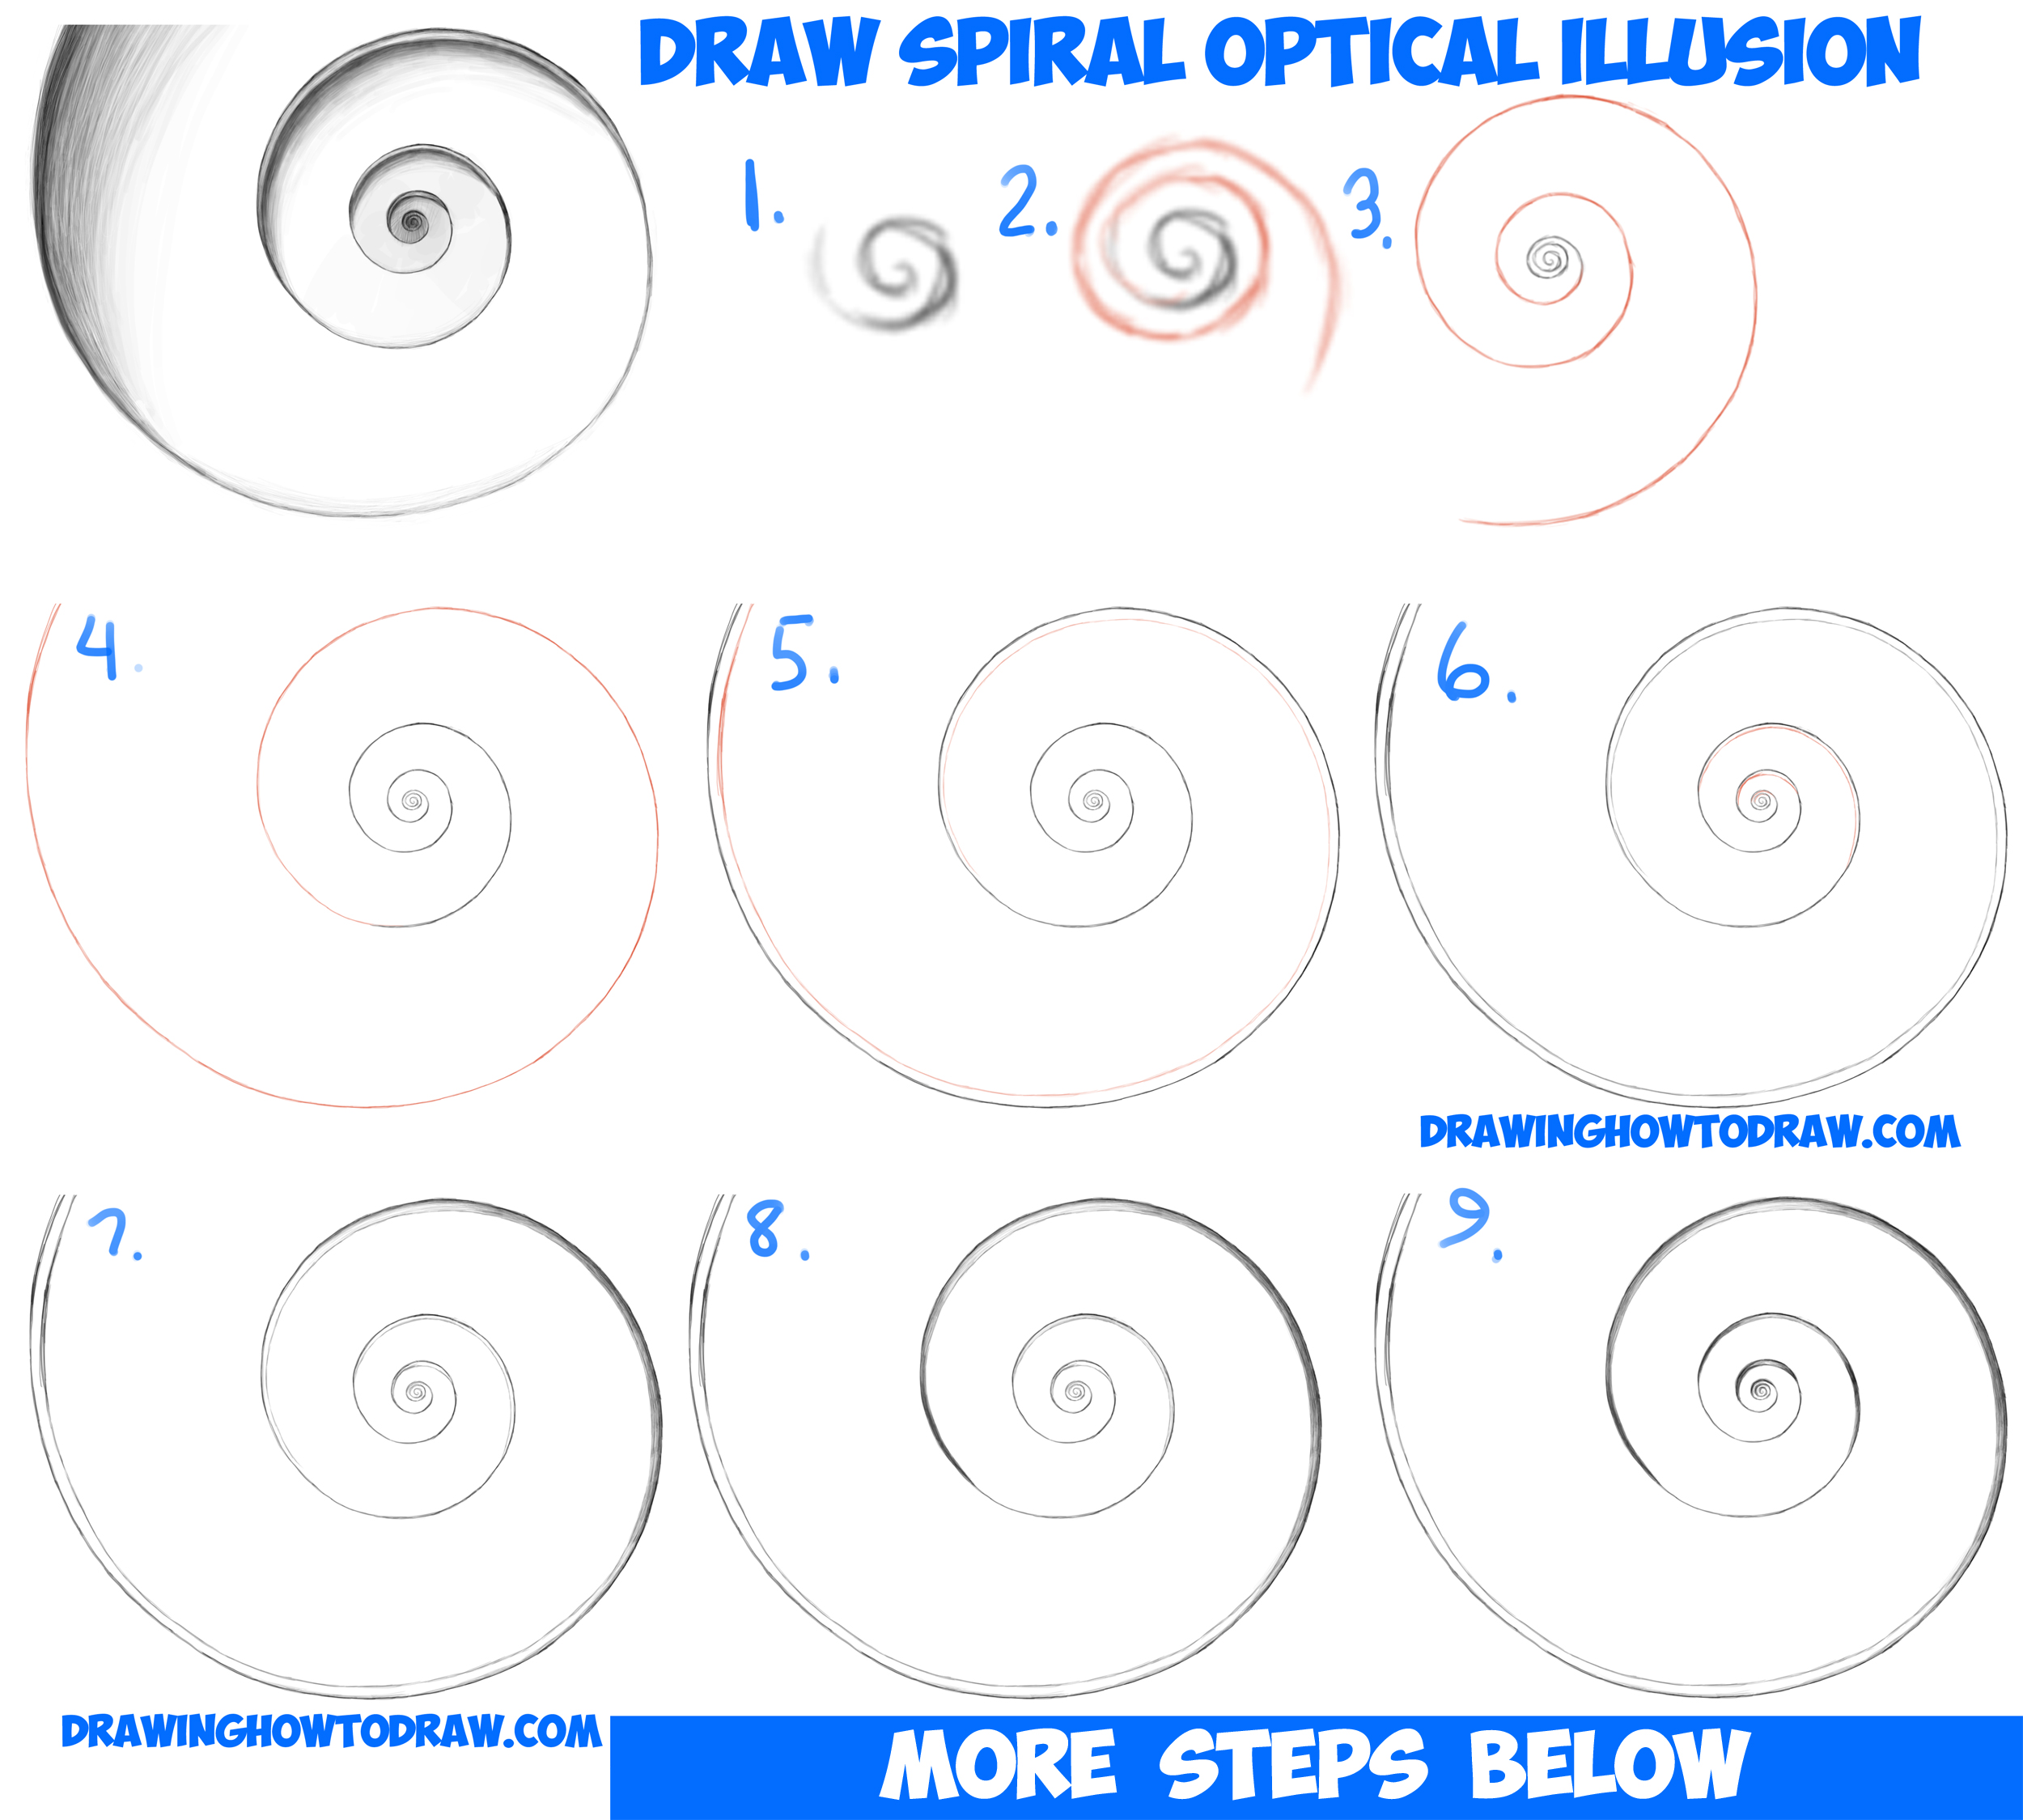 Drawn optical illusion beginner For Spiral Step How Step